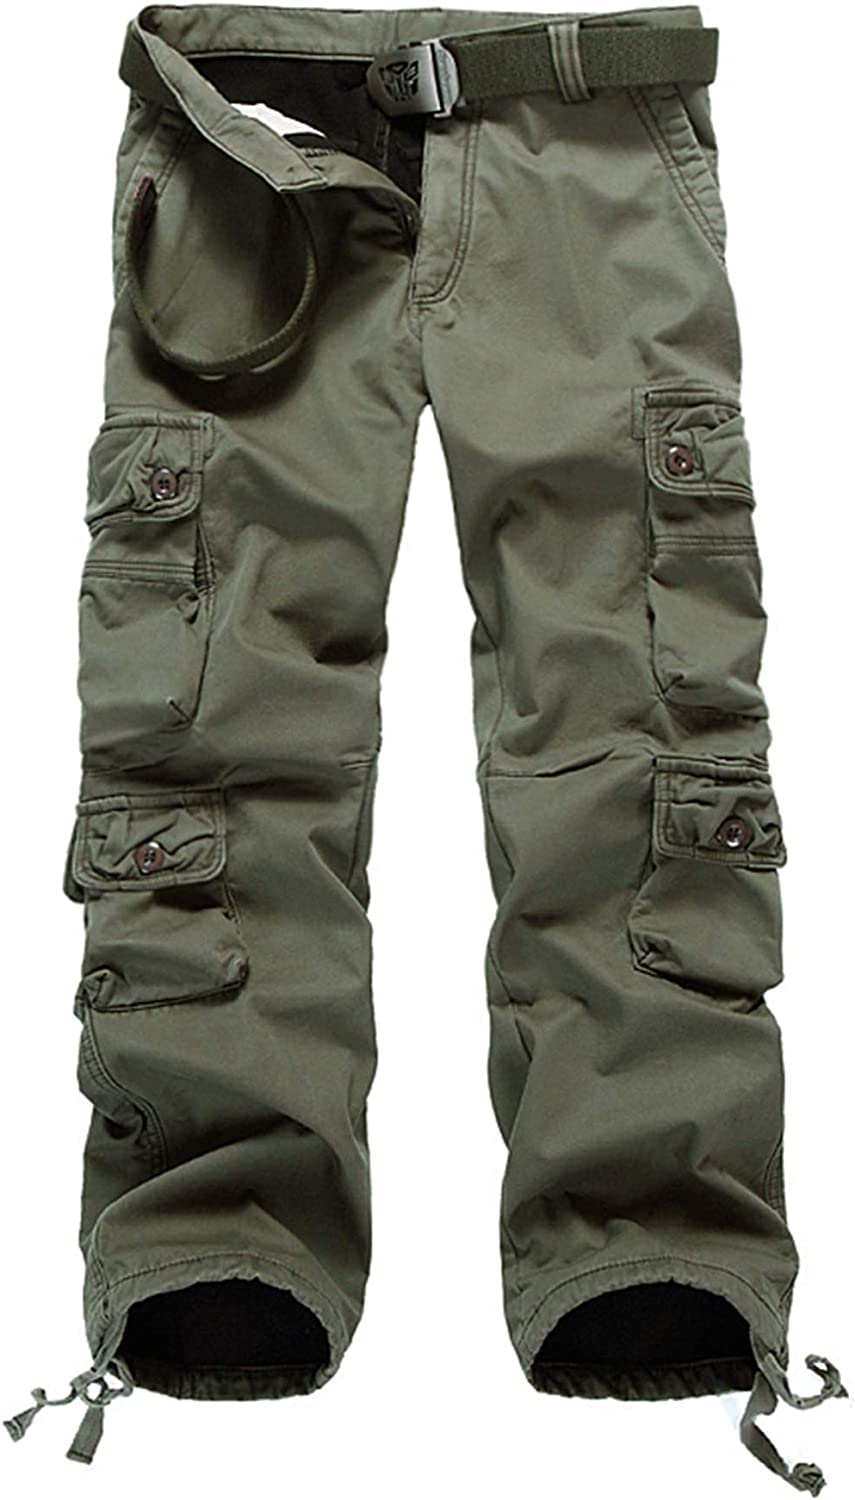 Outstanding DONGD Winter Mens Cargo Pants Lined Max 53% OFF Work Fleece Pant